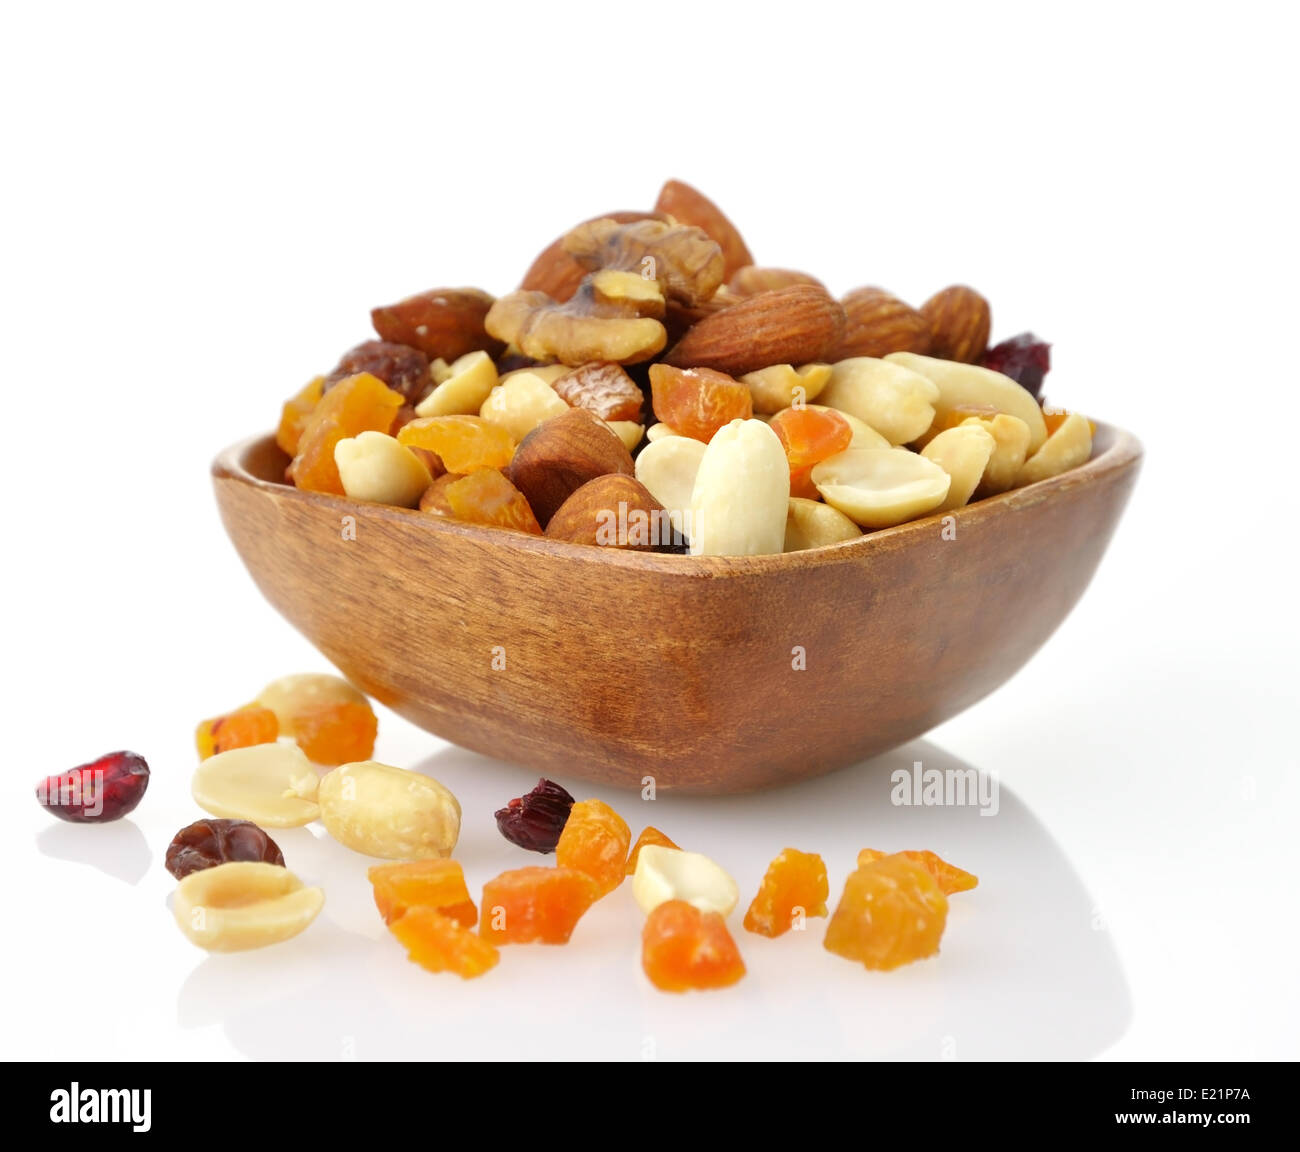 mixed dried fruit, nuts and seeds - Stock Image